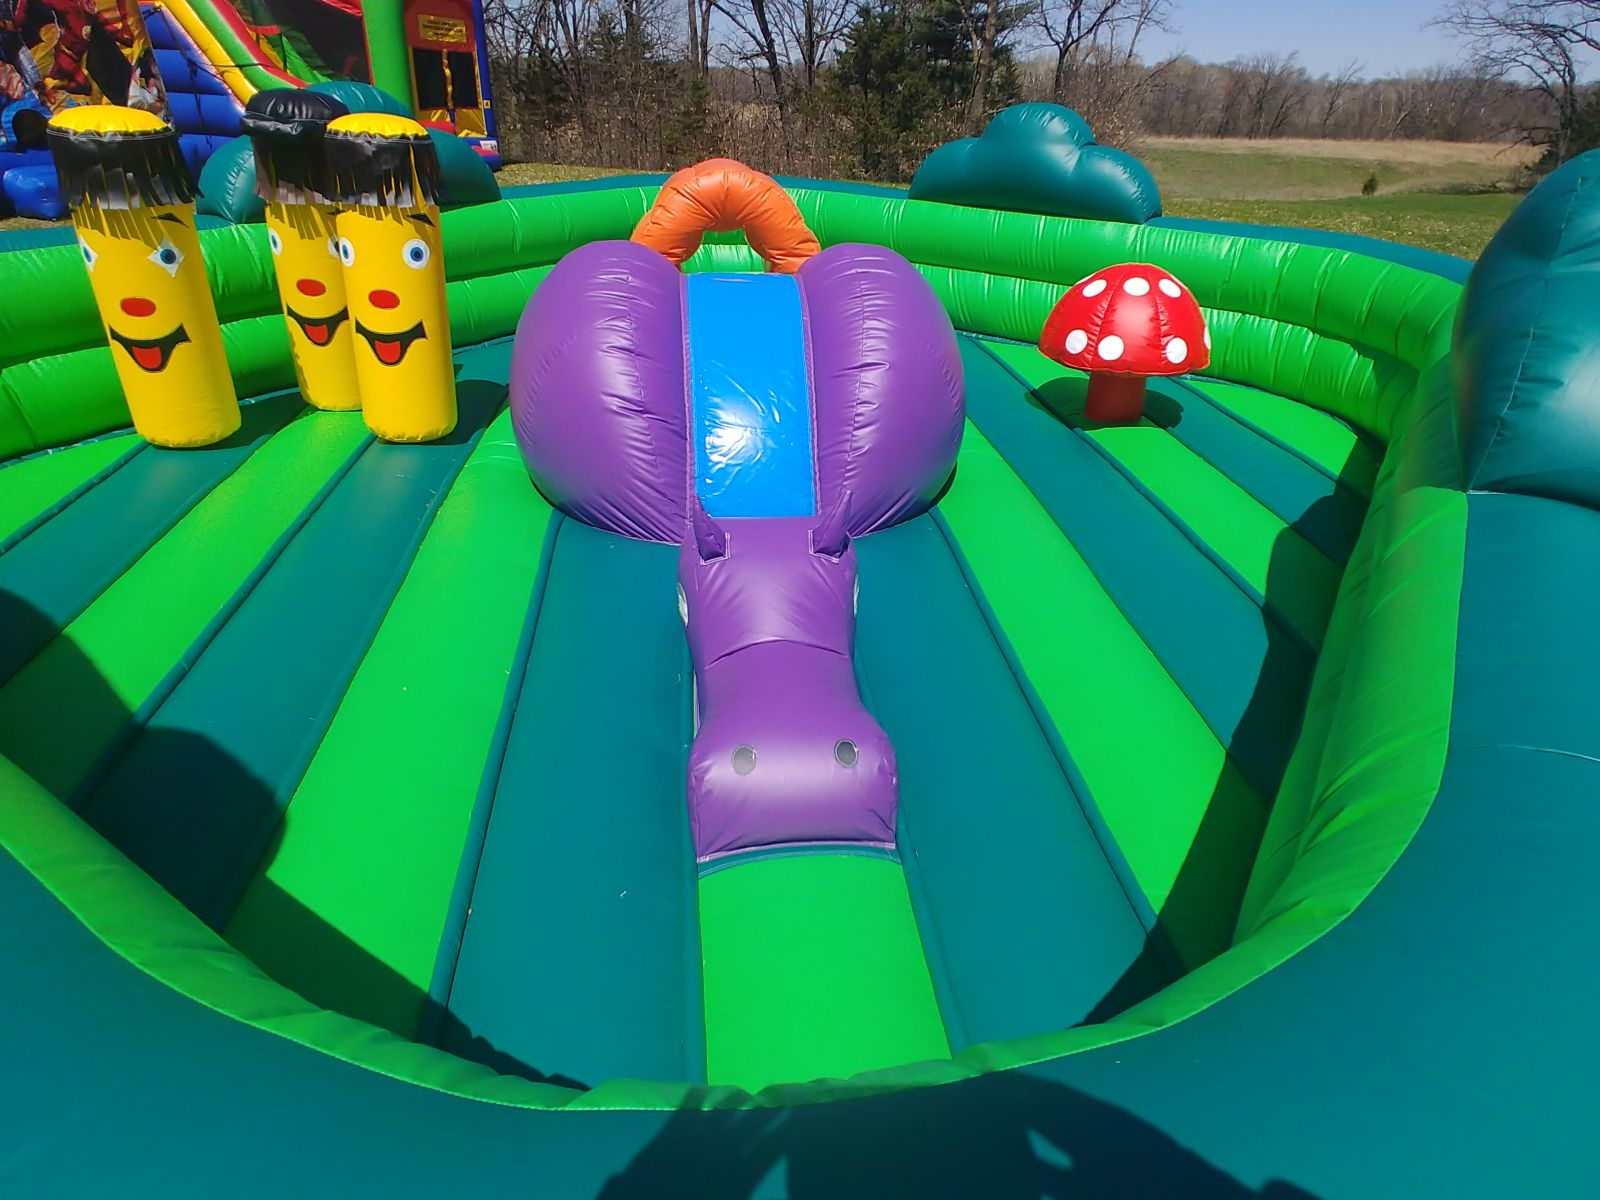 Bounce House for toddlers with small slide, tunnels, obstacles, and more!